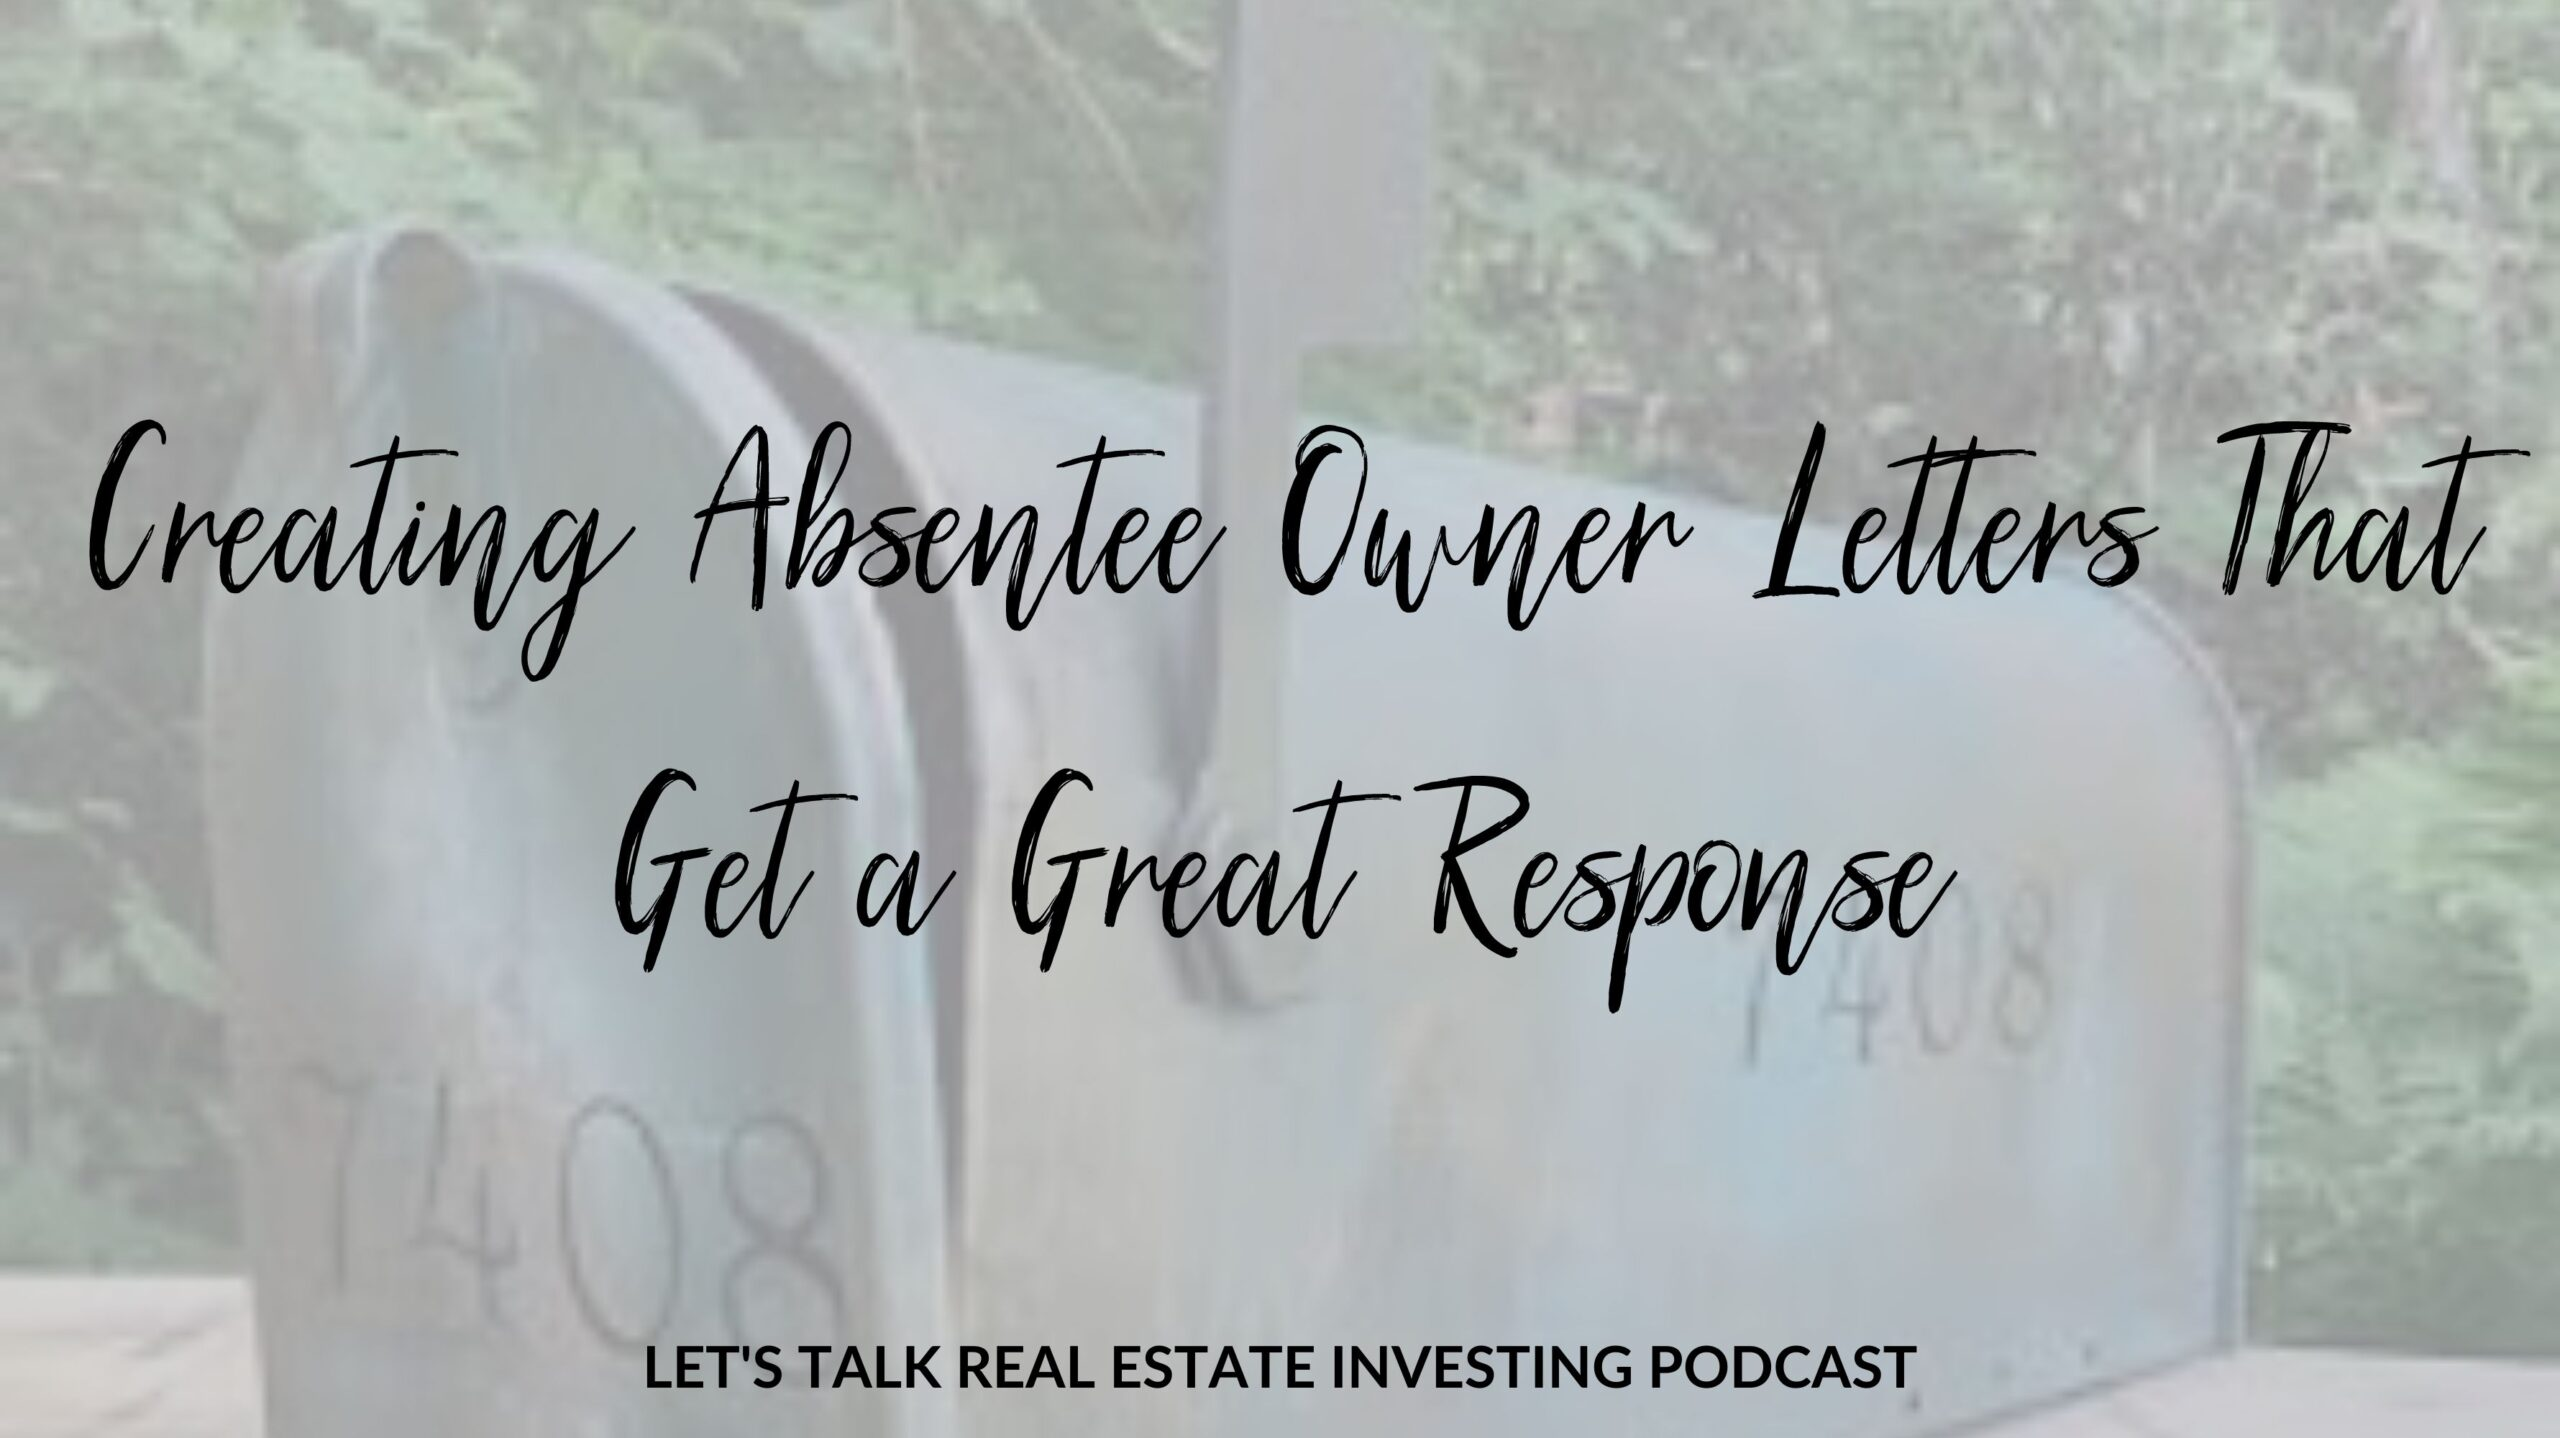 Creating Absentee Owner Letters That Get a Great Response